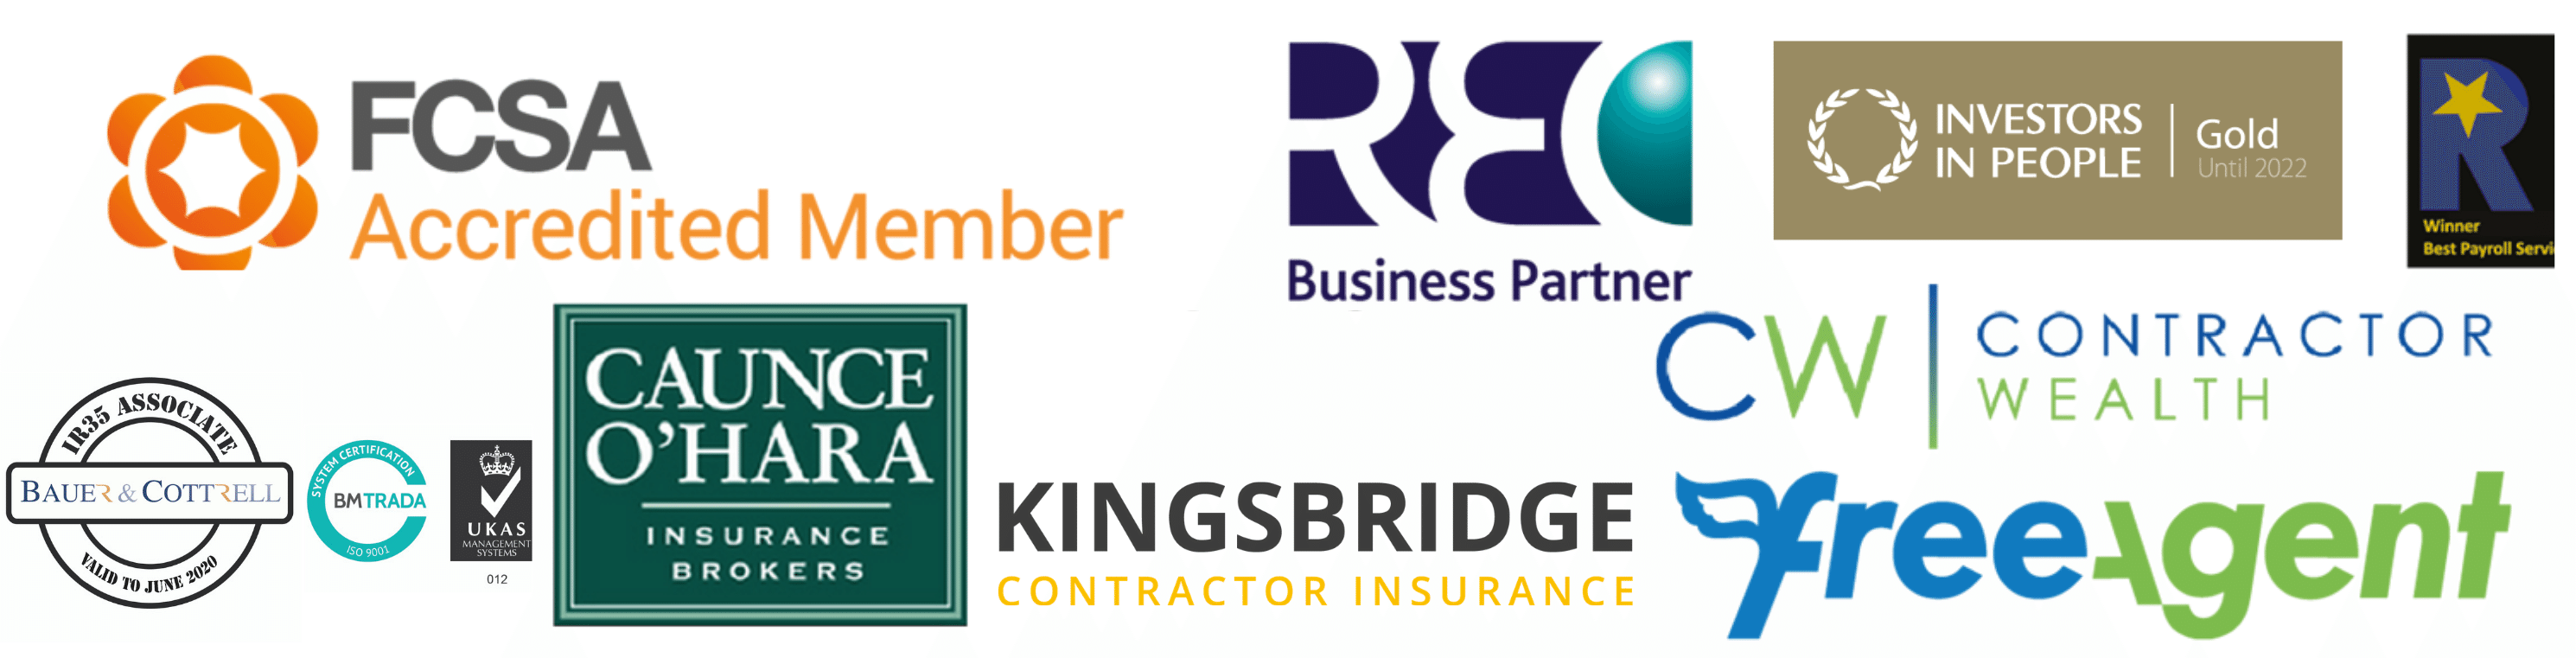 Kingsbridge new resized logo Sept 2019 HS landing pages (content offers) footer with New Accreditations up to August 2019 (1)